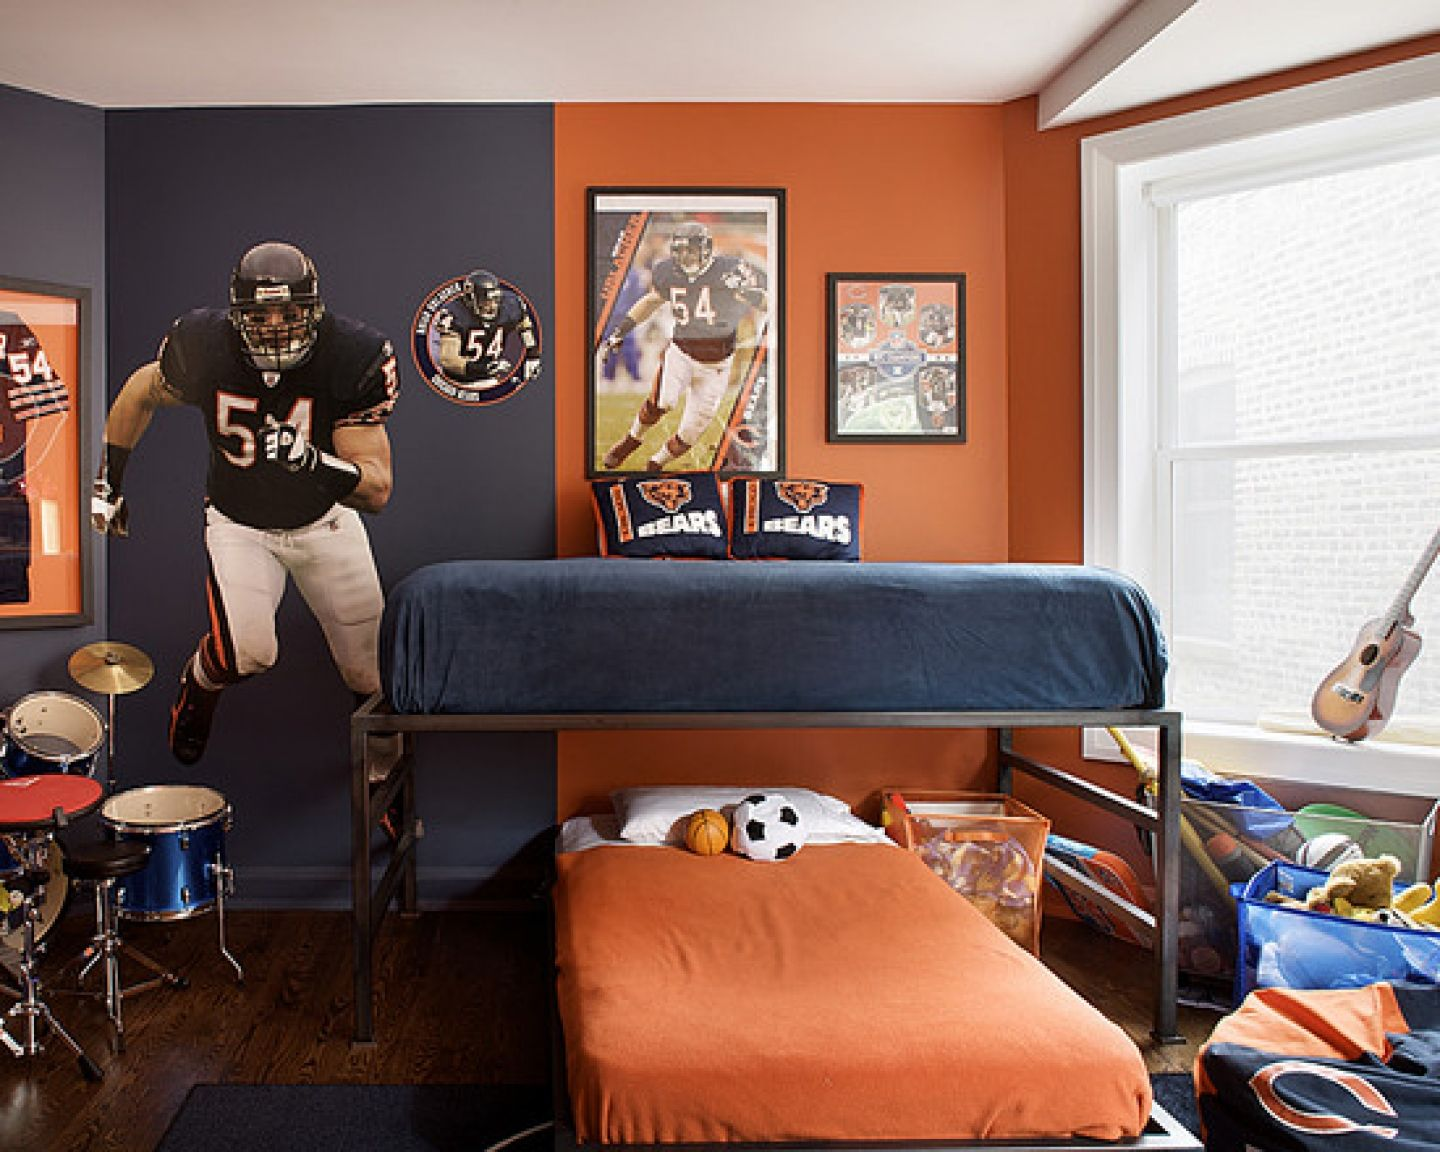 Sports Decor For Boys Bedroom Teenage Boys Bedroom Ideas Bedroom Ideas For Tween Boys